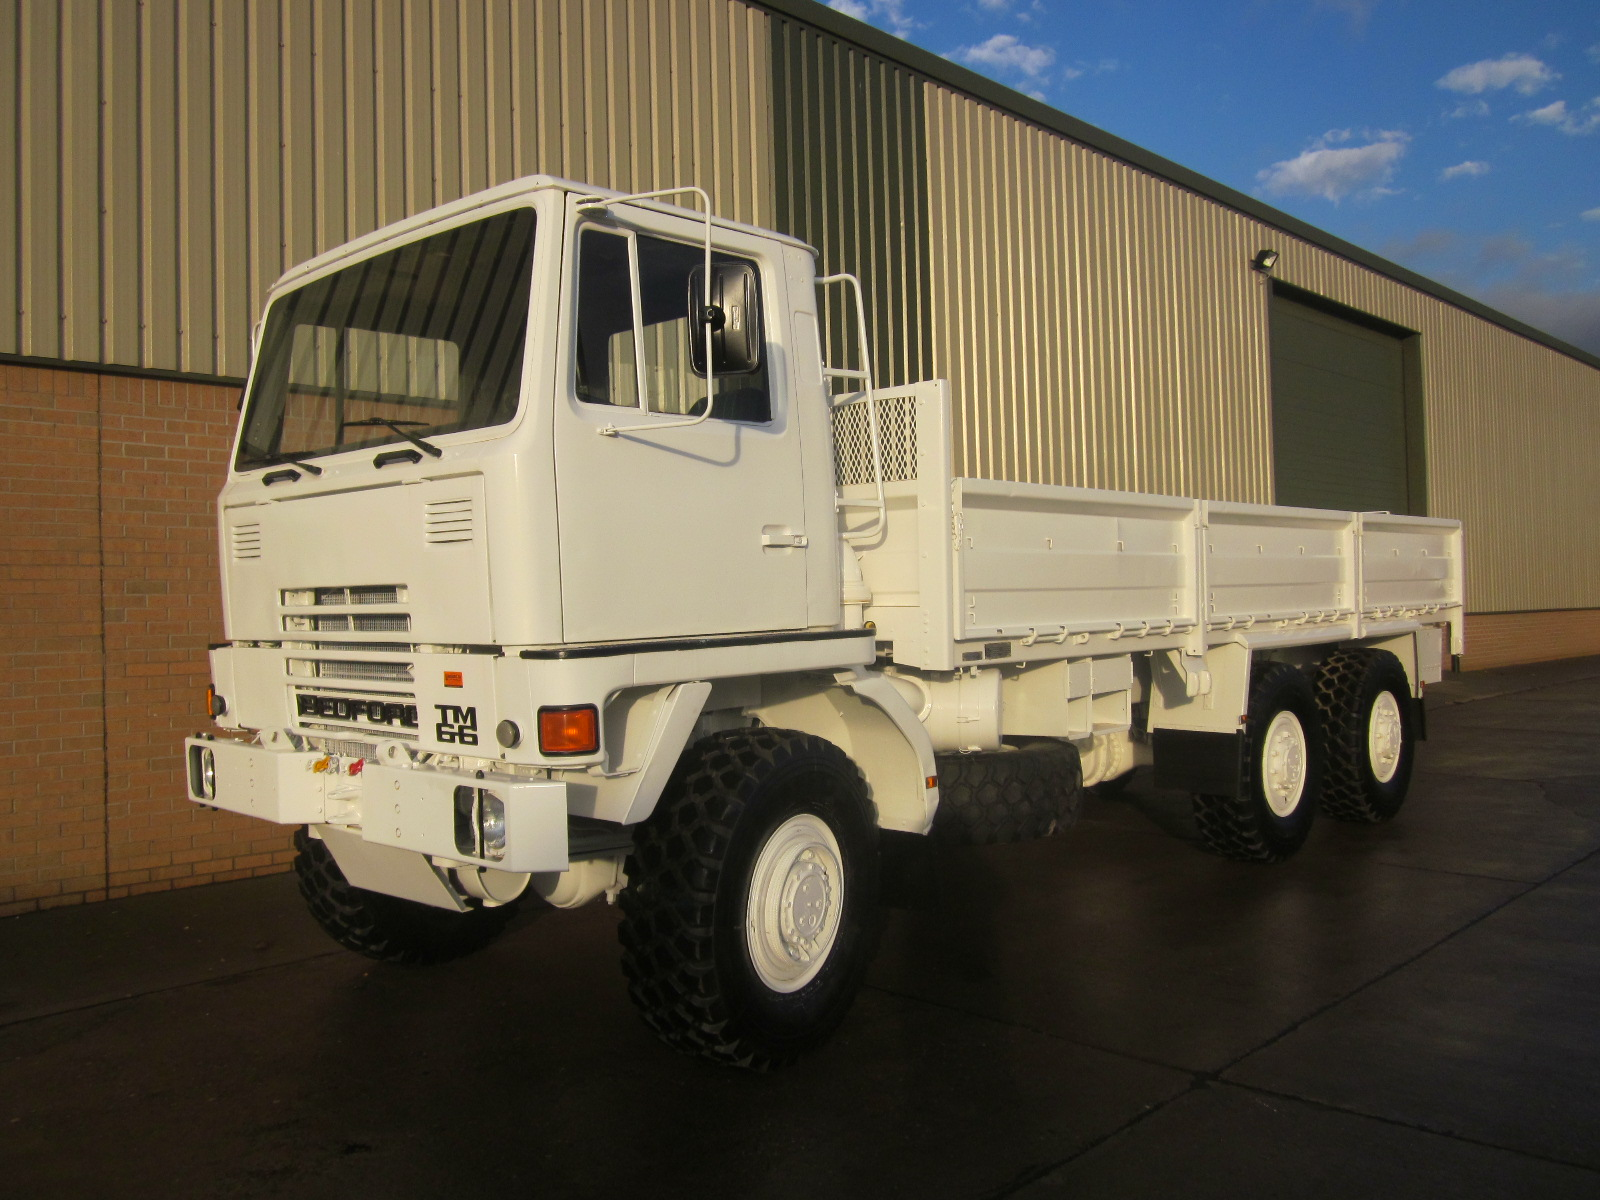 Bedford TM 6x6  container carrier for sale | for sale in Angola, Kenya,  Nigeria, Tanzania, Mozambique, South Africa, Zambia, Ghana- Sale In  Africa and the Middle East